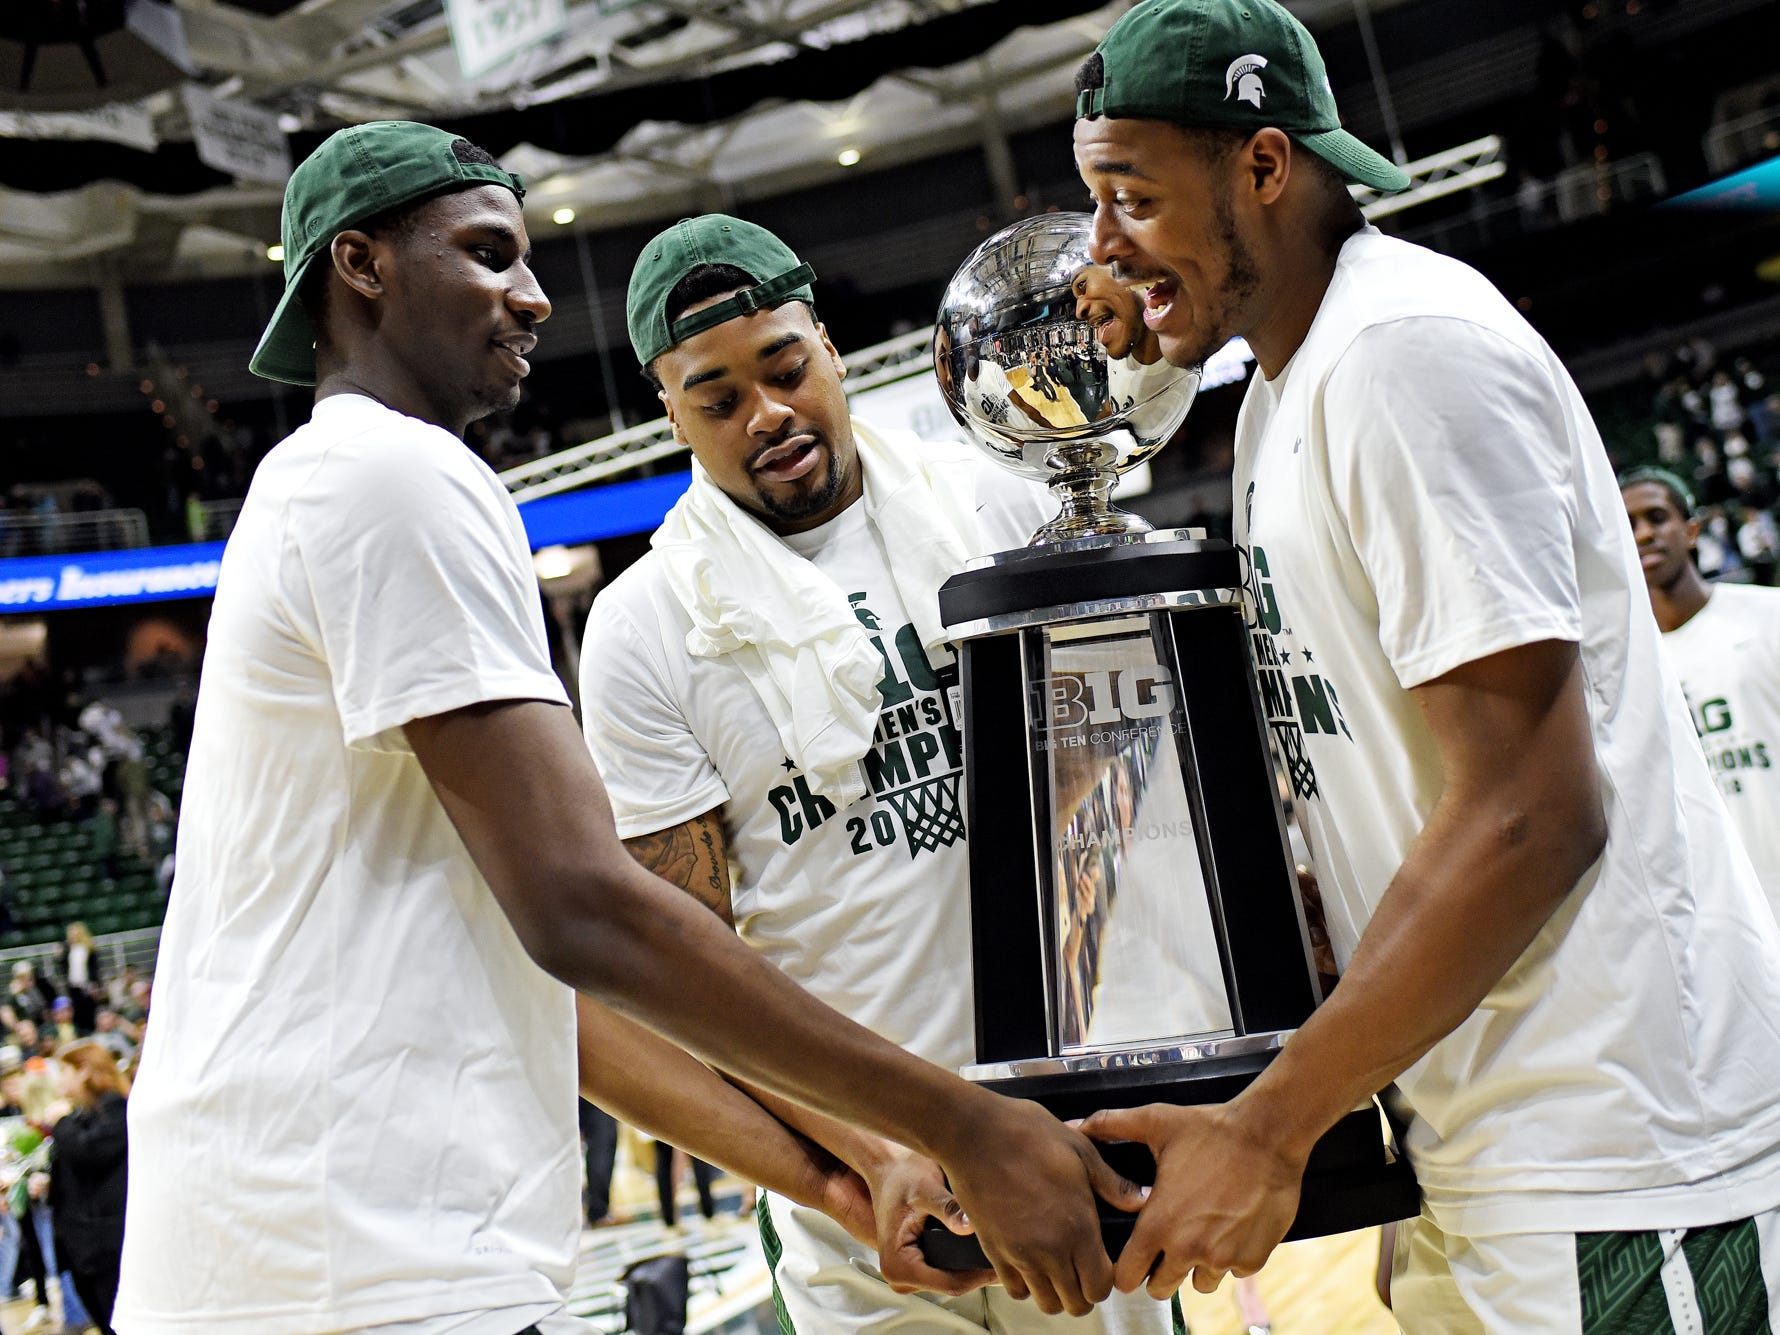 From left, Michigan State's Jaren Jackson Jr., Nick Ward and Xavier Tillman carry the BIG 10 Conference championship trophy back to the locker room after the game on Tuesday, Feb. 20, 2018, at the Breslin Center in East Lansing. The Spartans beat Illinois 81-61.